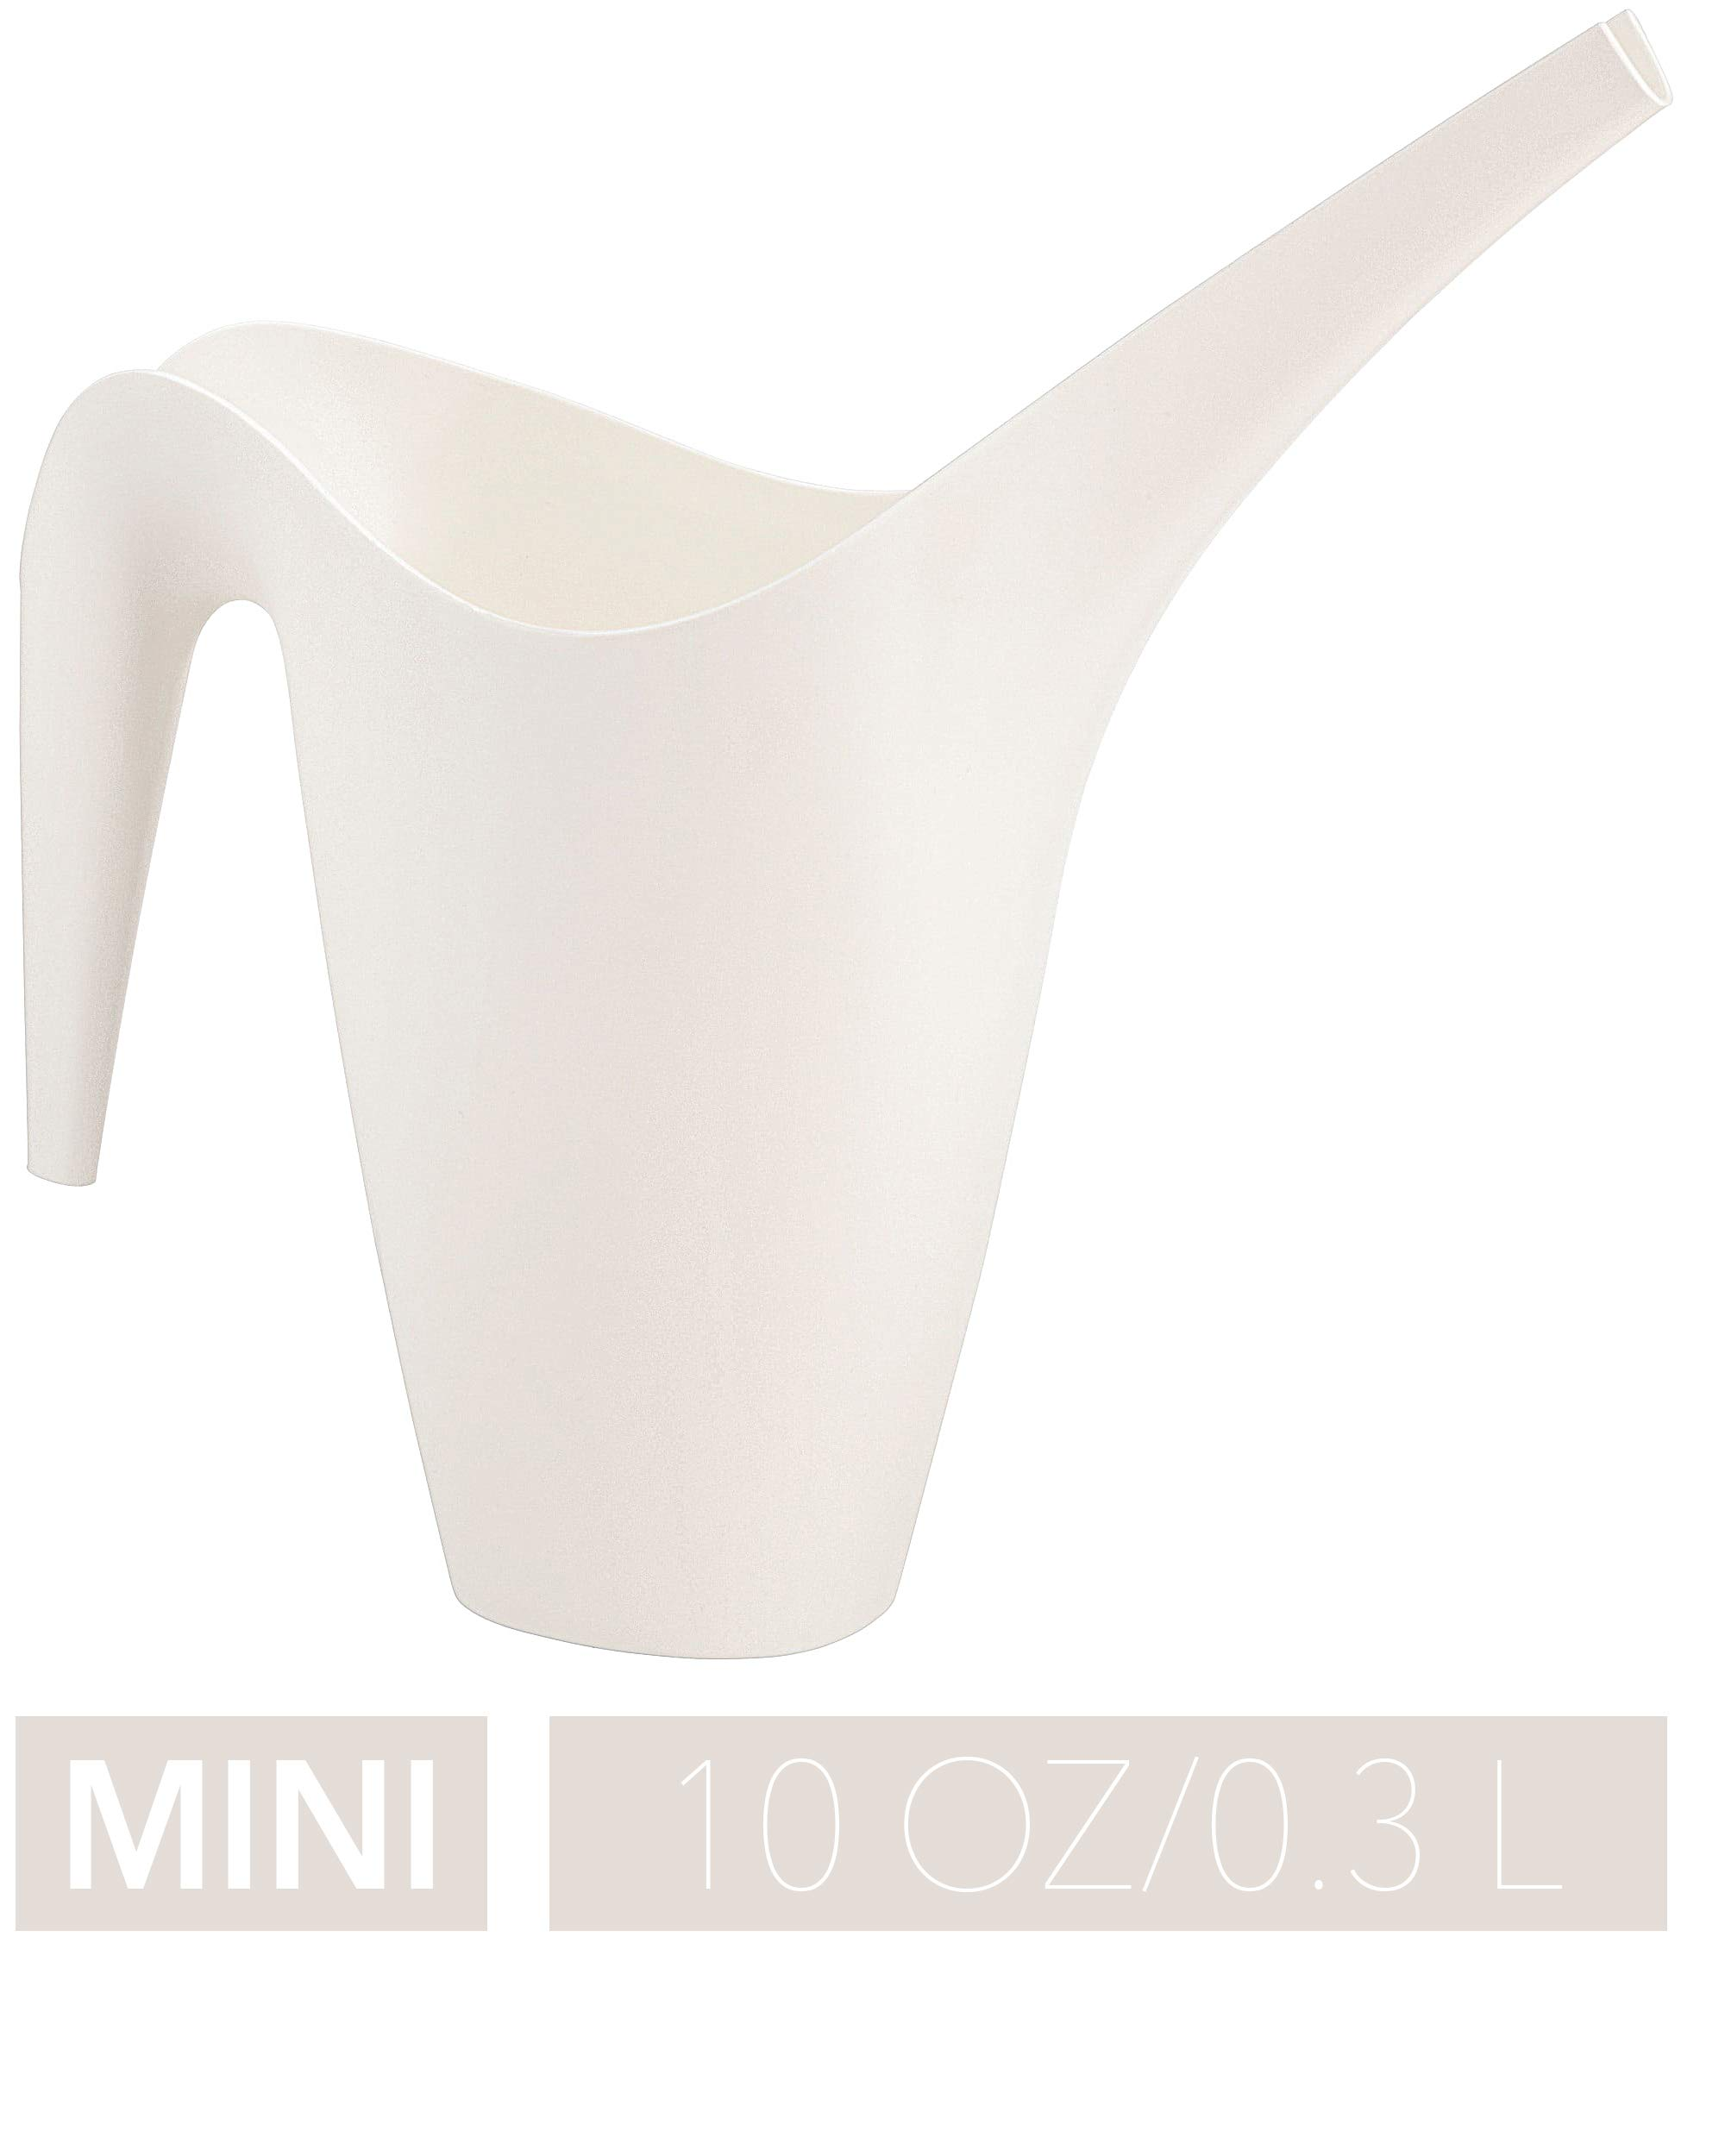 Crebri Mini Watering Can Indoor 10oz, Small Plant Watering Can, Succulent Bottle, Plastic Flower Tools for House, Tiny Bonsai Water Cans, Miniature (10 oz, White)